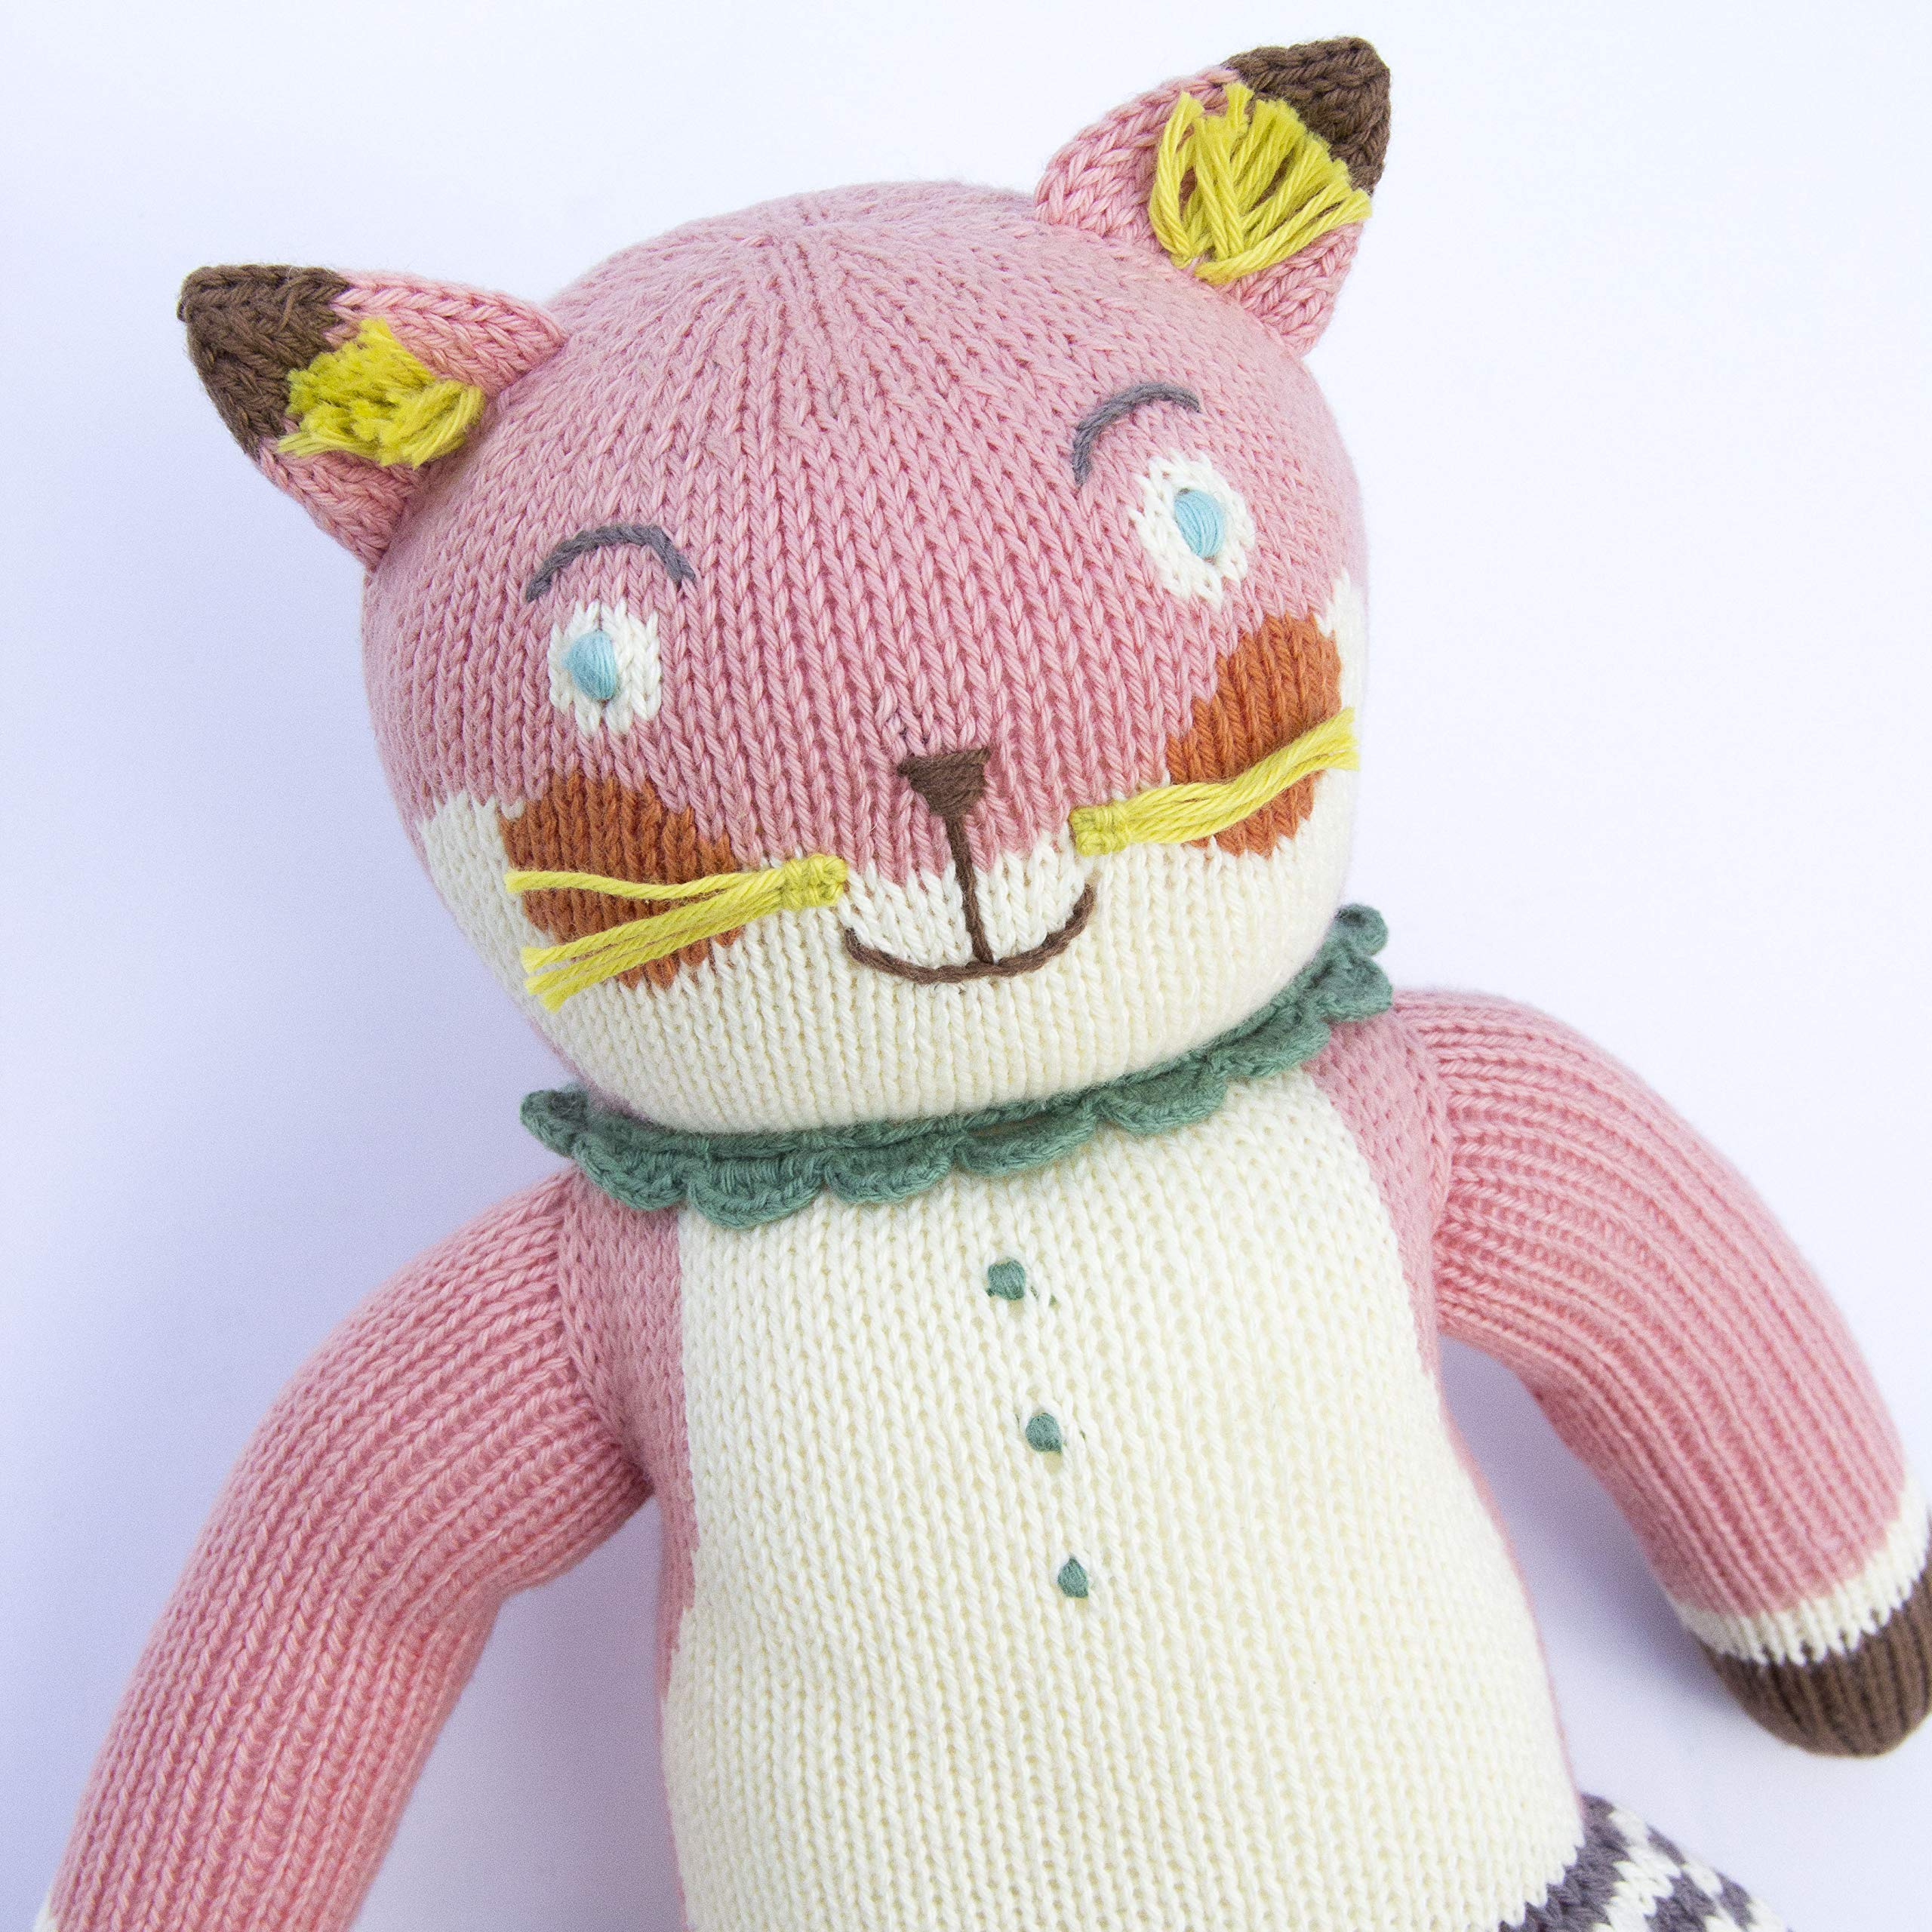 Blabla Suzette The Fox Plush Doll - Knit Stuffed Animal for Kids. Cute, Cuddly & Soft Cotton Toy. Perfect, Forever Cherished. Eco-Friendly. Certified Safe & Non-Toxic. by Blabla